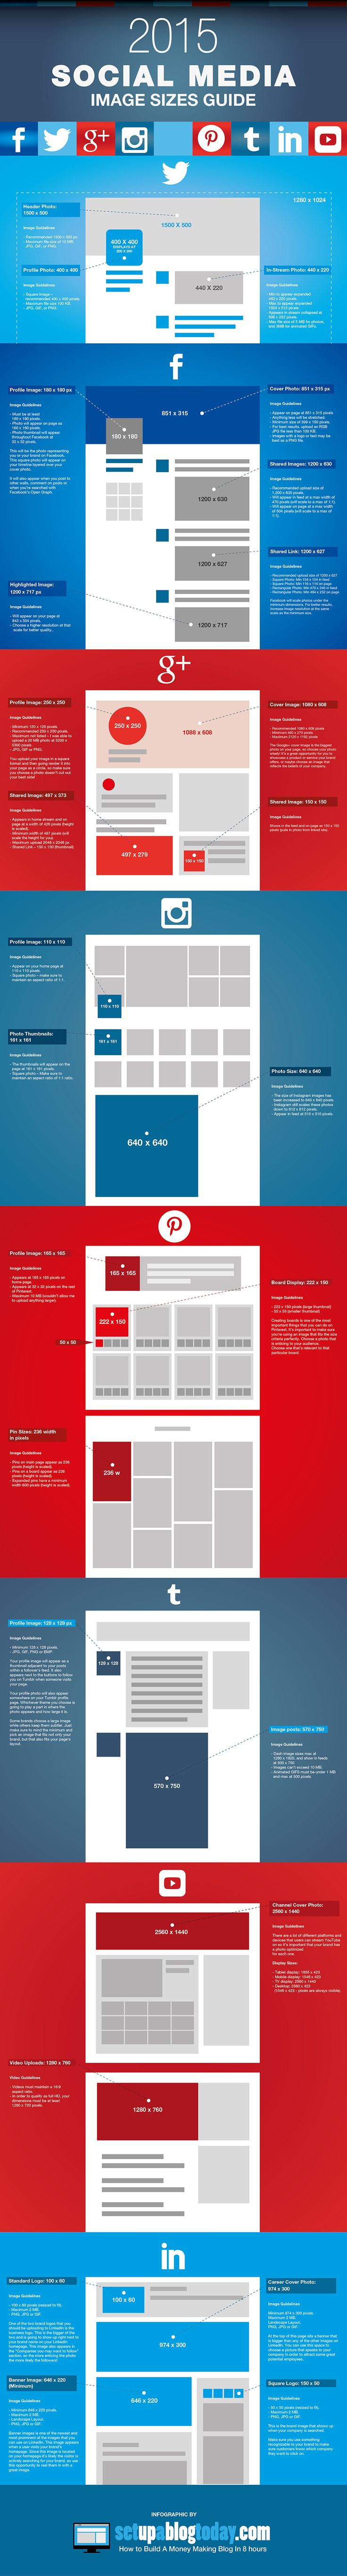 2015 Social Image Sizes Guide